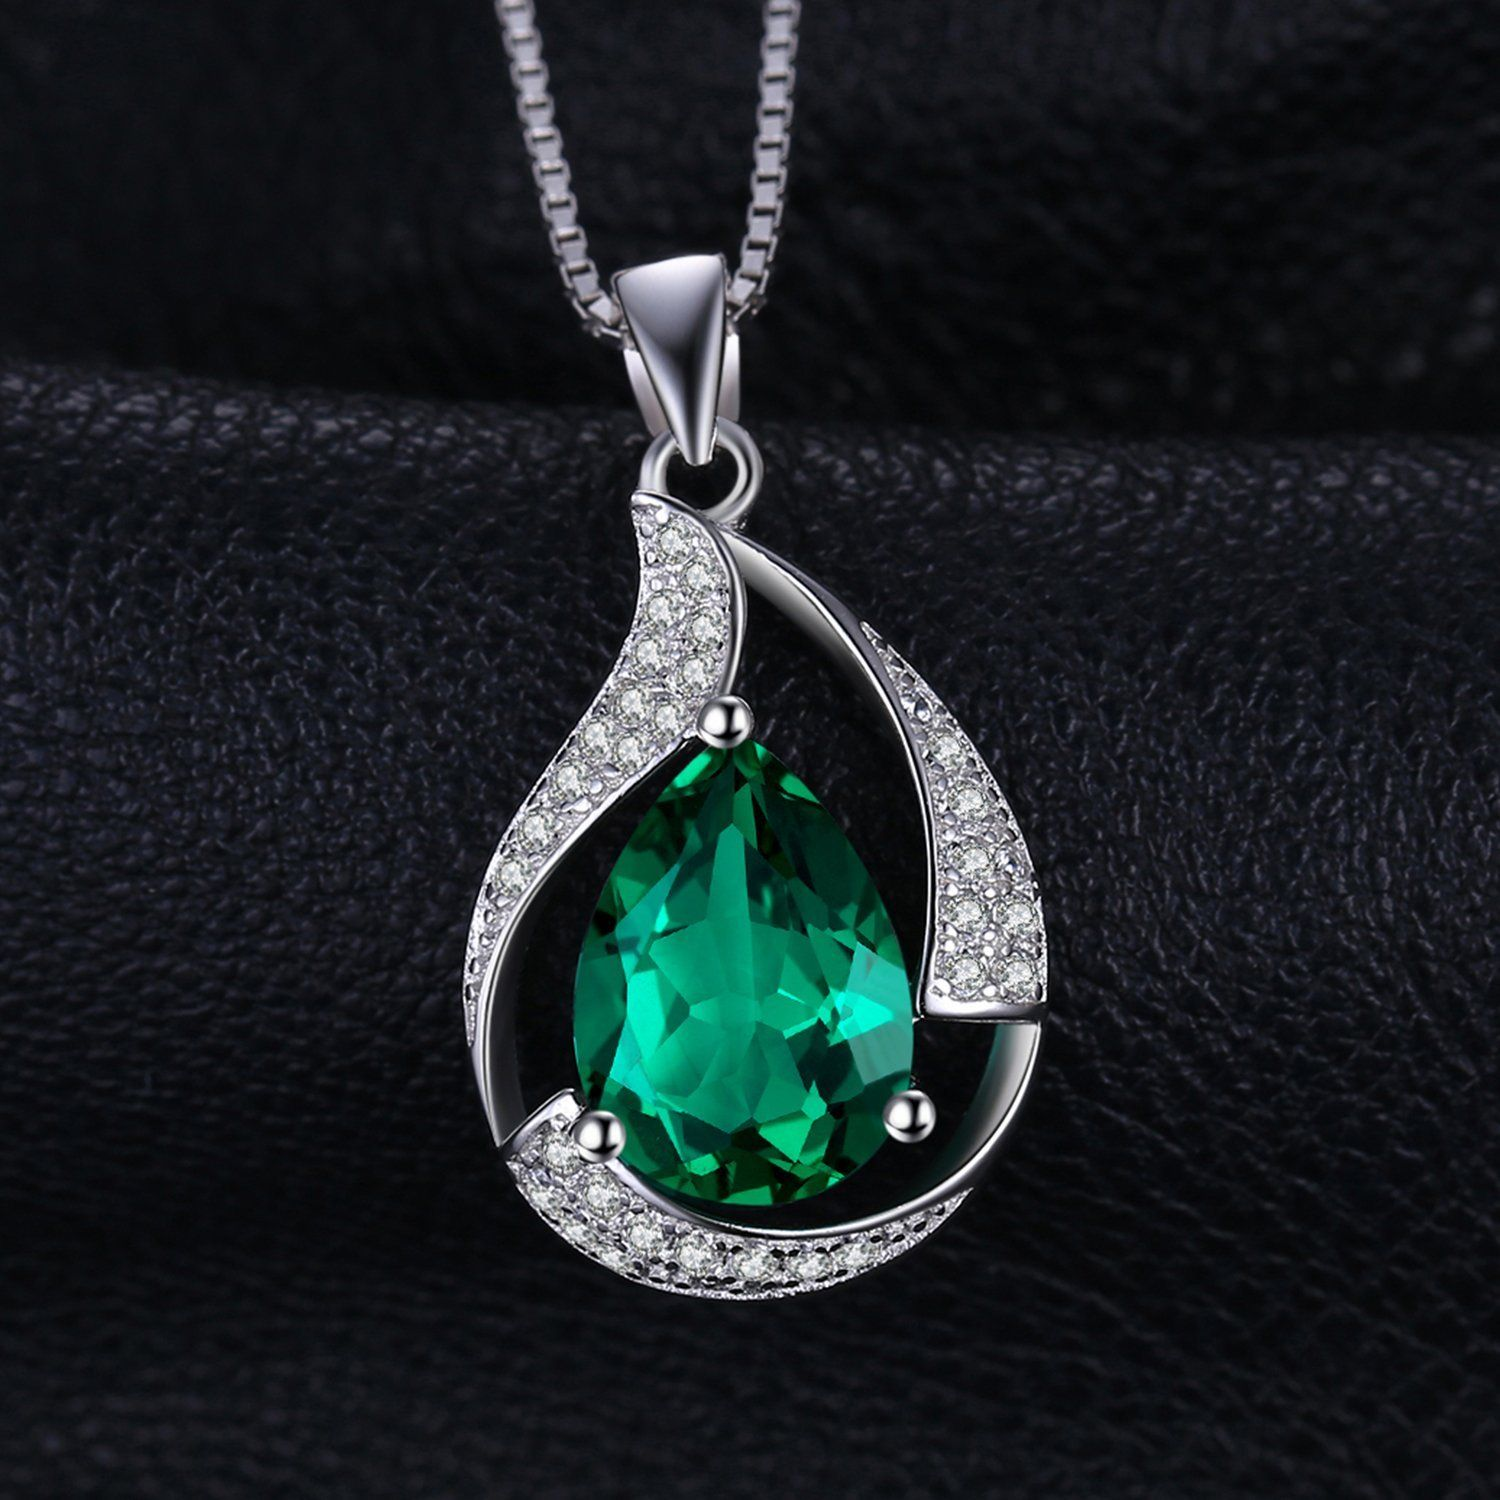 JewelryPalace Pear 2.7ct Simulated Green Nano Russian Emerald 925 Sterling Silver Pendant Necklace 18 Inches tLmwE